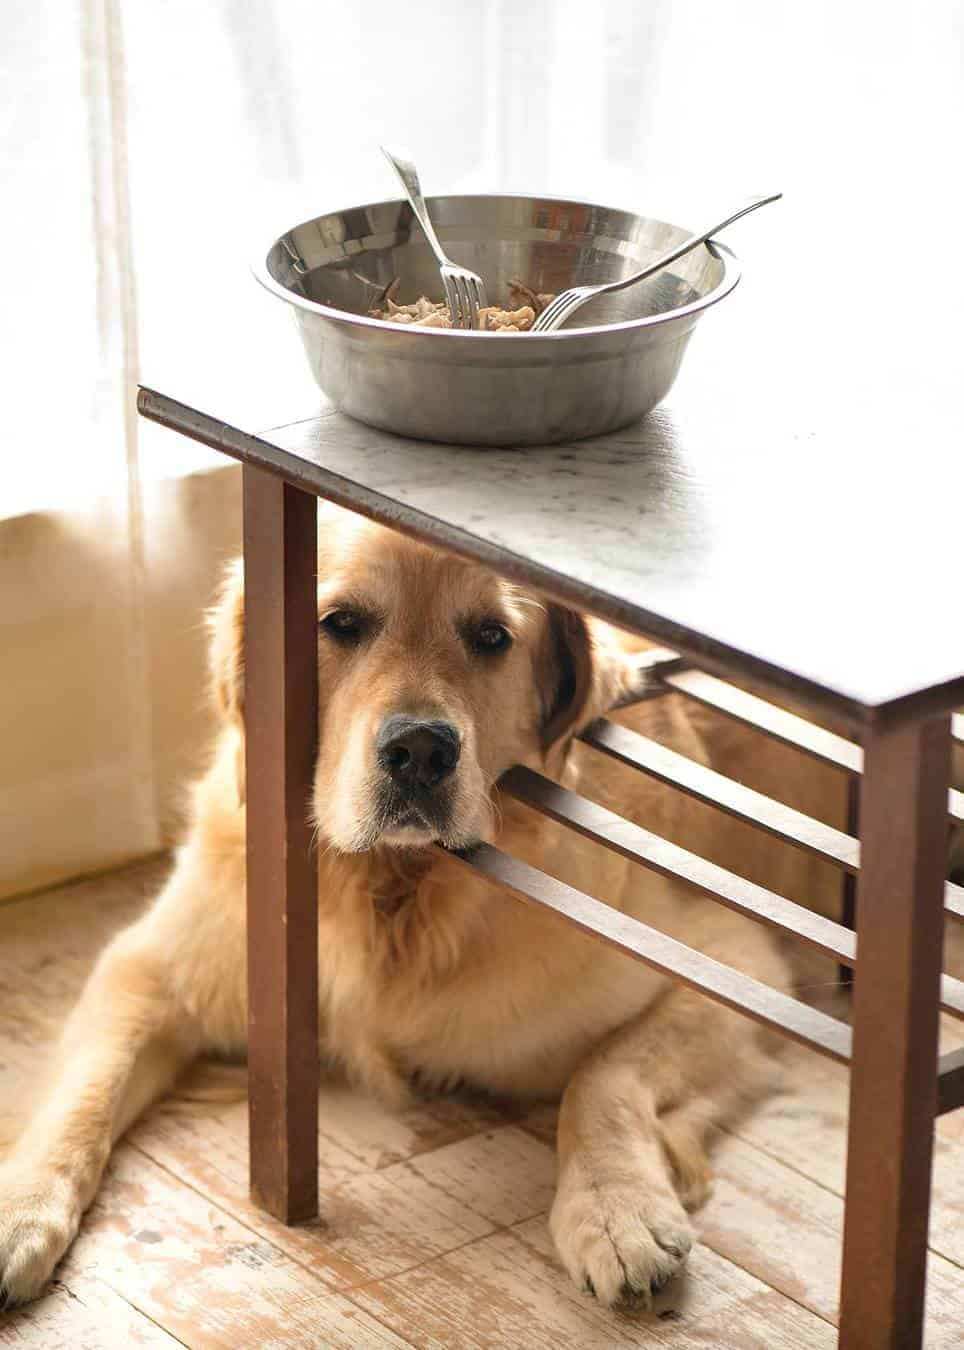 Dozer the golden retriever sitting under a bowl of shredded chicken